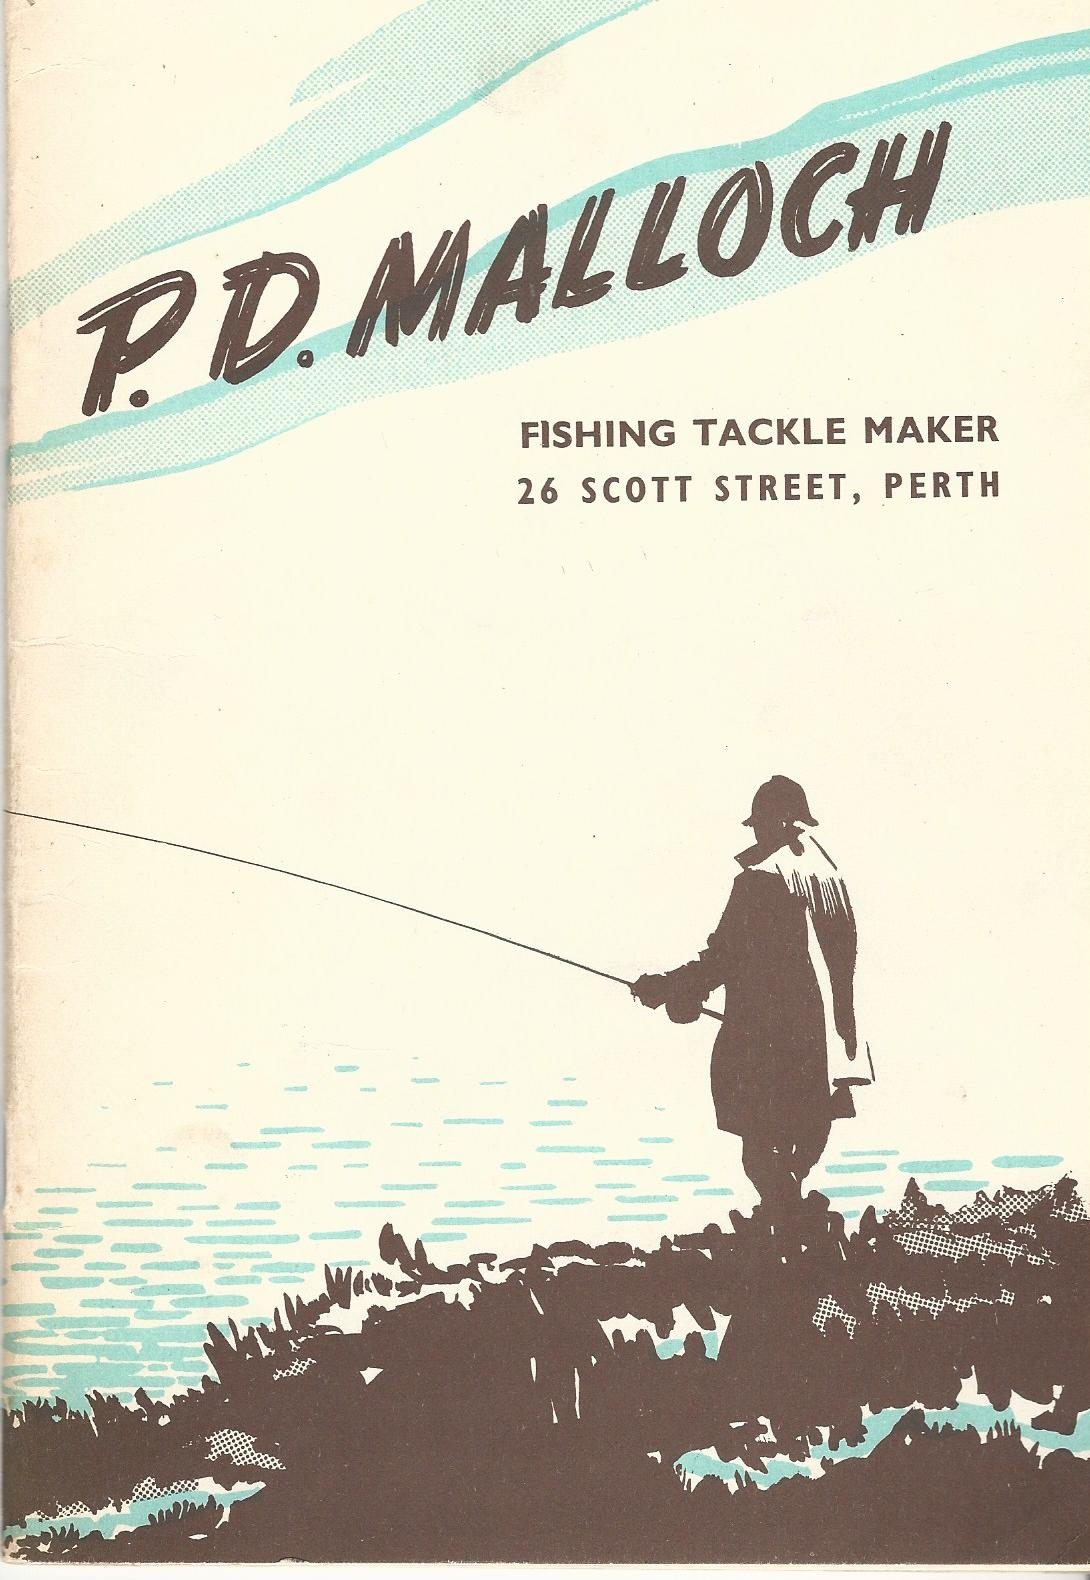 Image for P.D. Malloch Fishing Tackle Maker, Scott Street, Perth.